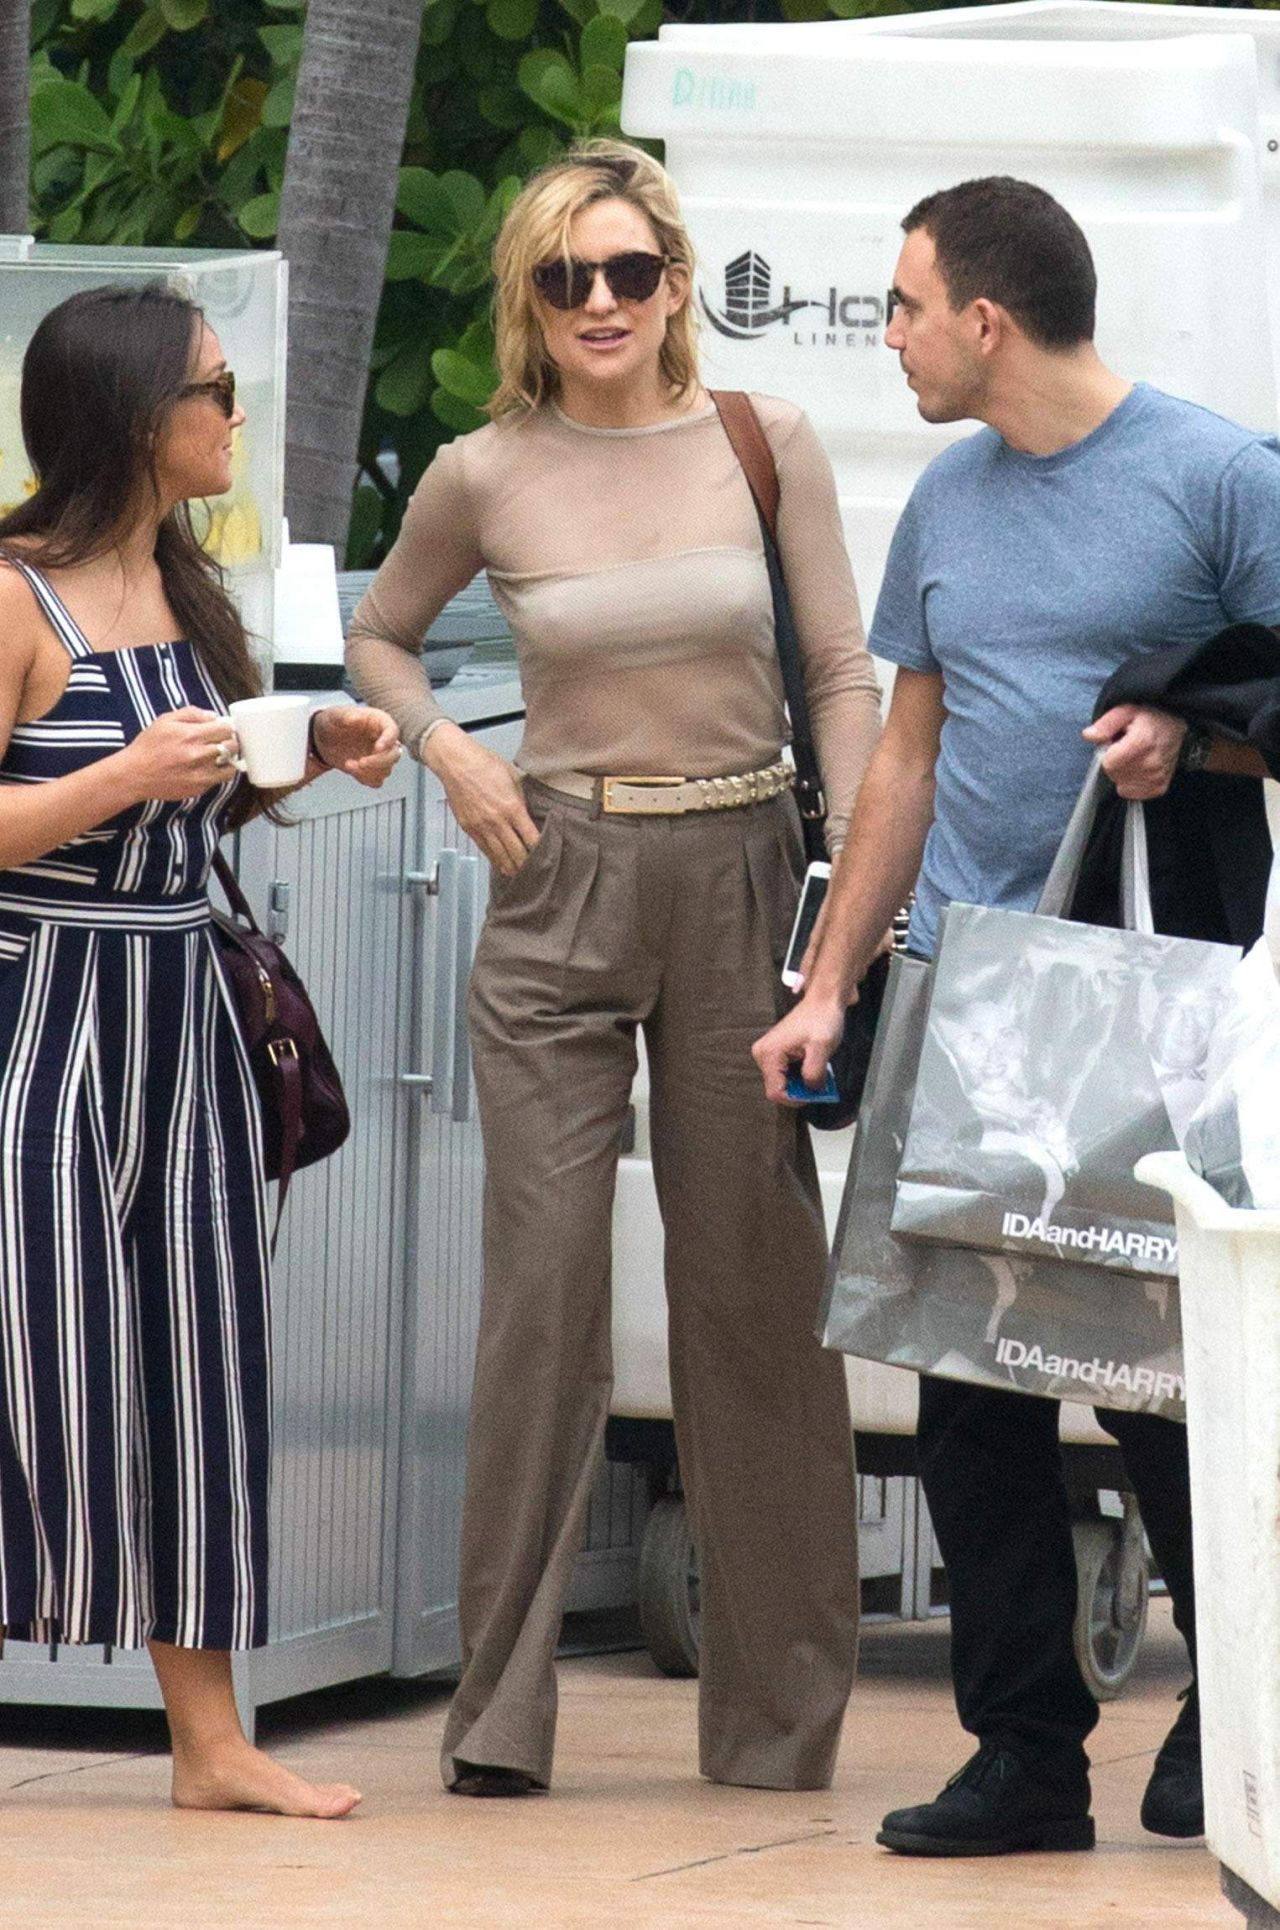 kate-hudson-style-leaving-her-hotel-in-miami-02-19-2016-1